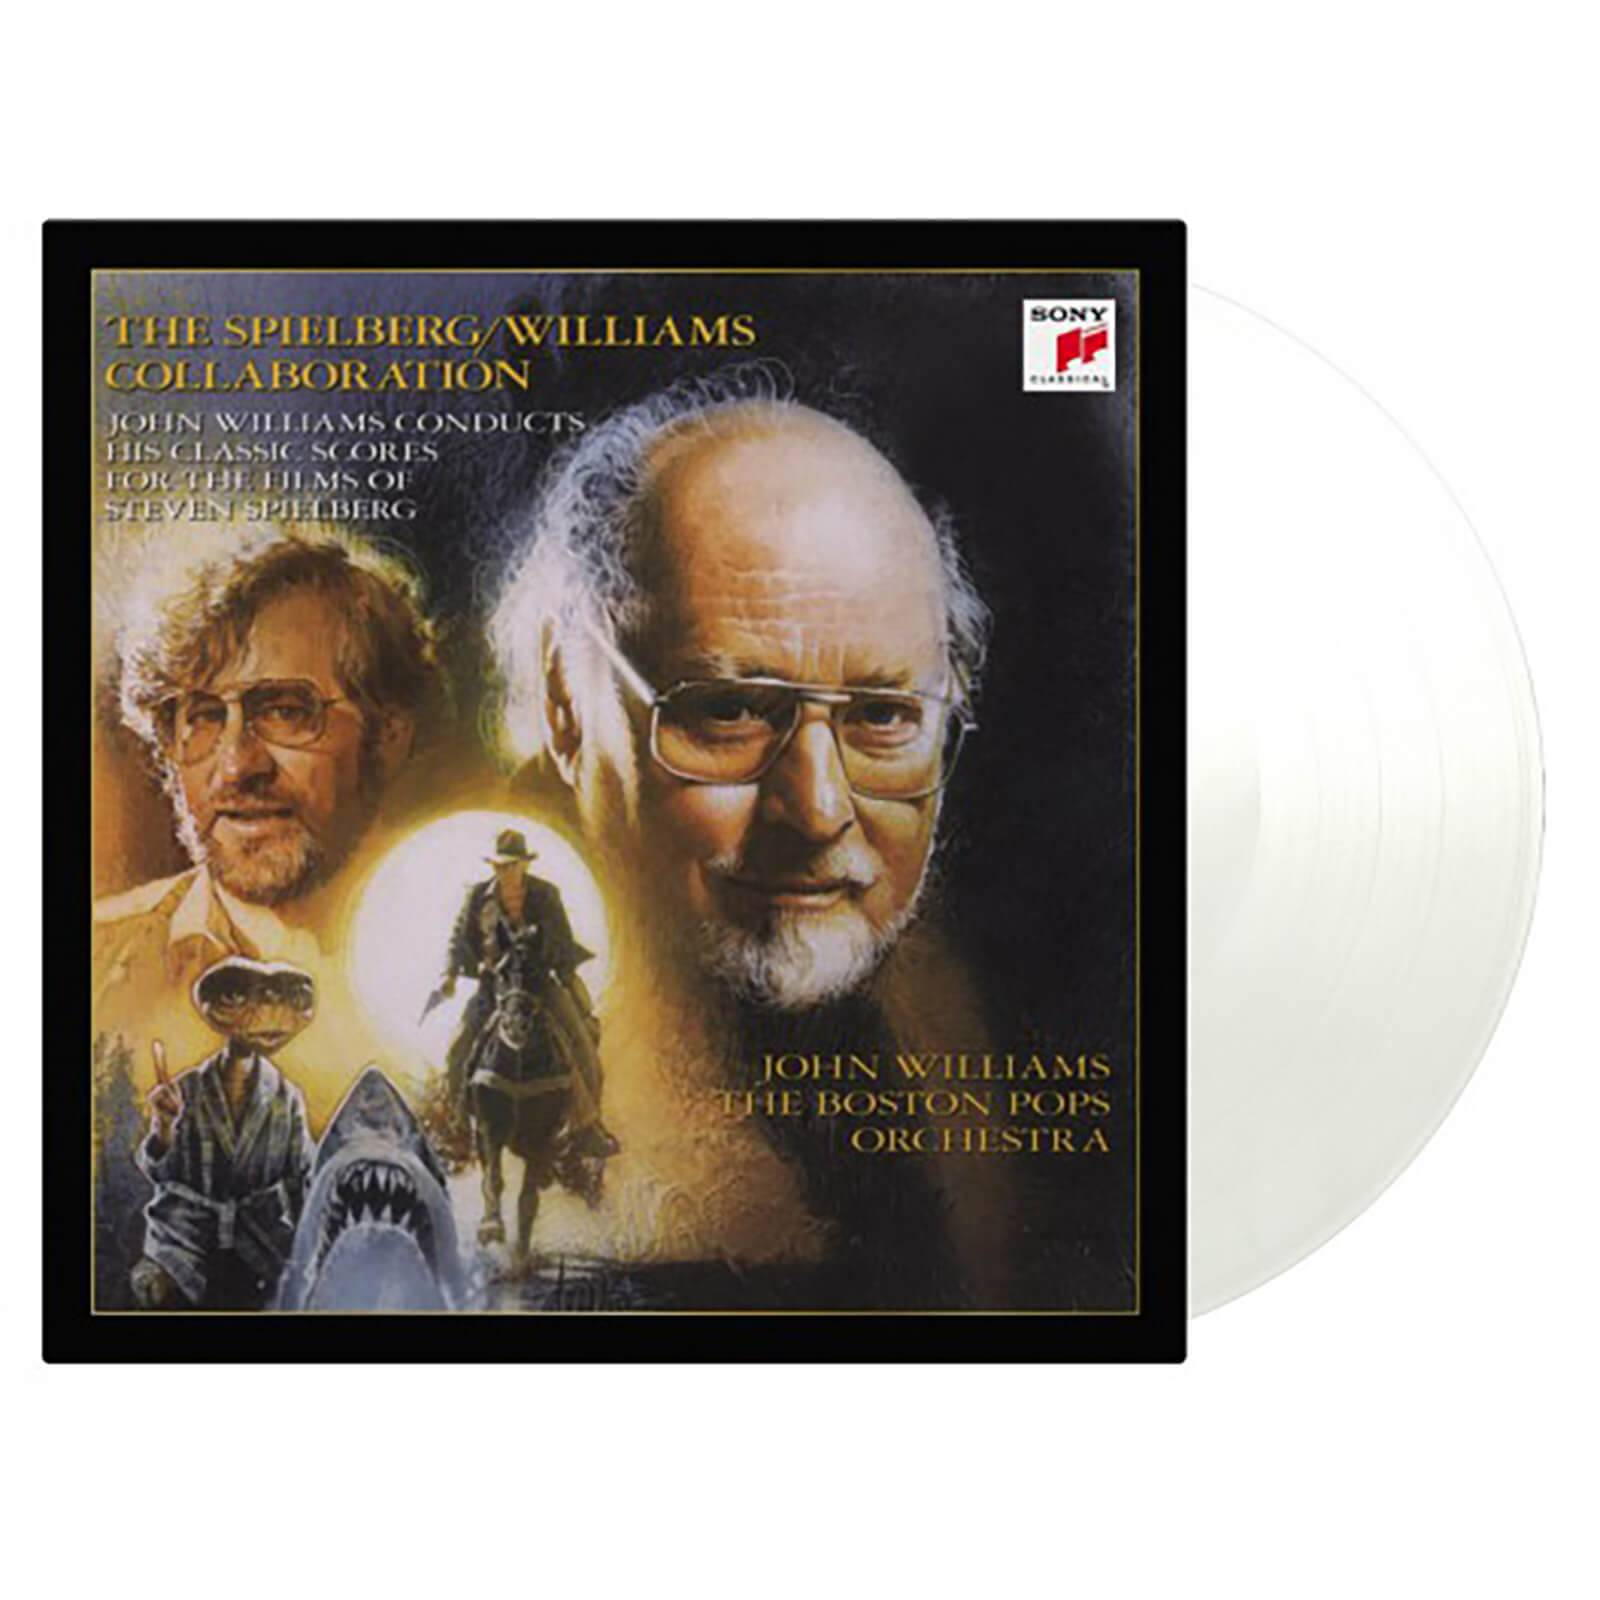 Music On Vinyl: At The Movies John Williams & Steven Spielberg - The Spielberg/Williams Collaboration [2LP] (LIMITED TRANSPARENT 180 Gram Audiophile Vinyl, gatefold, PVC sleeve, numbered to 1500)